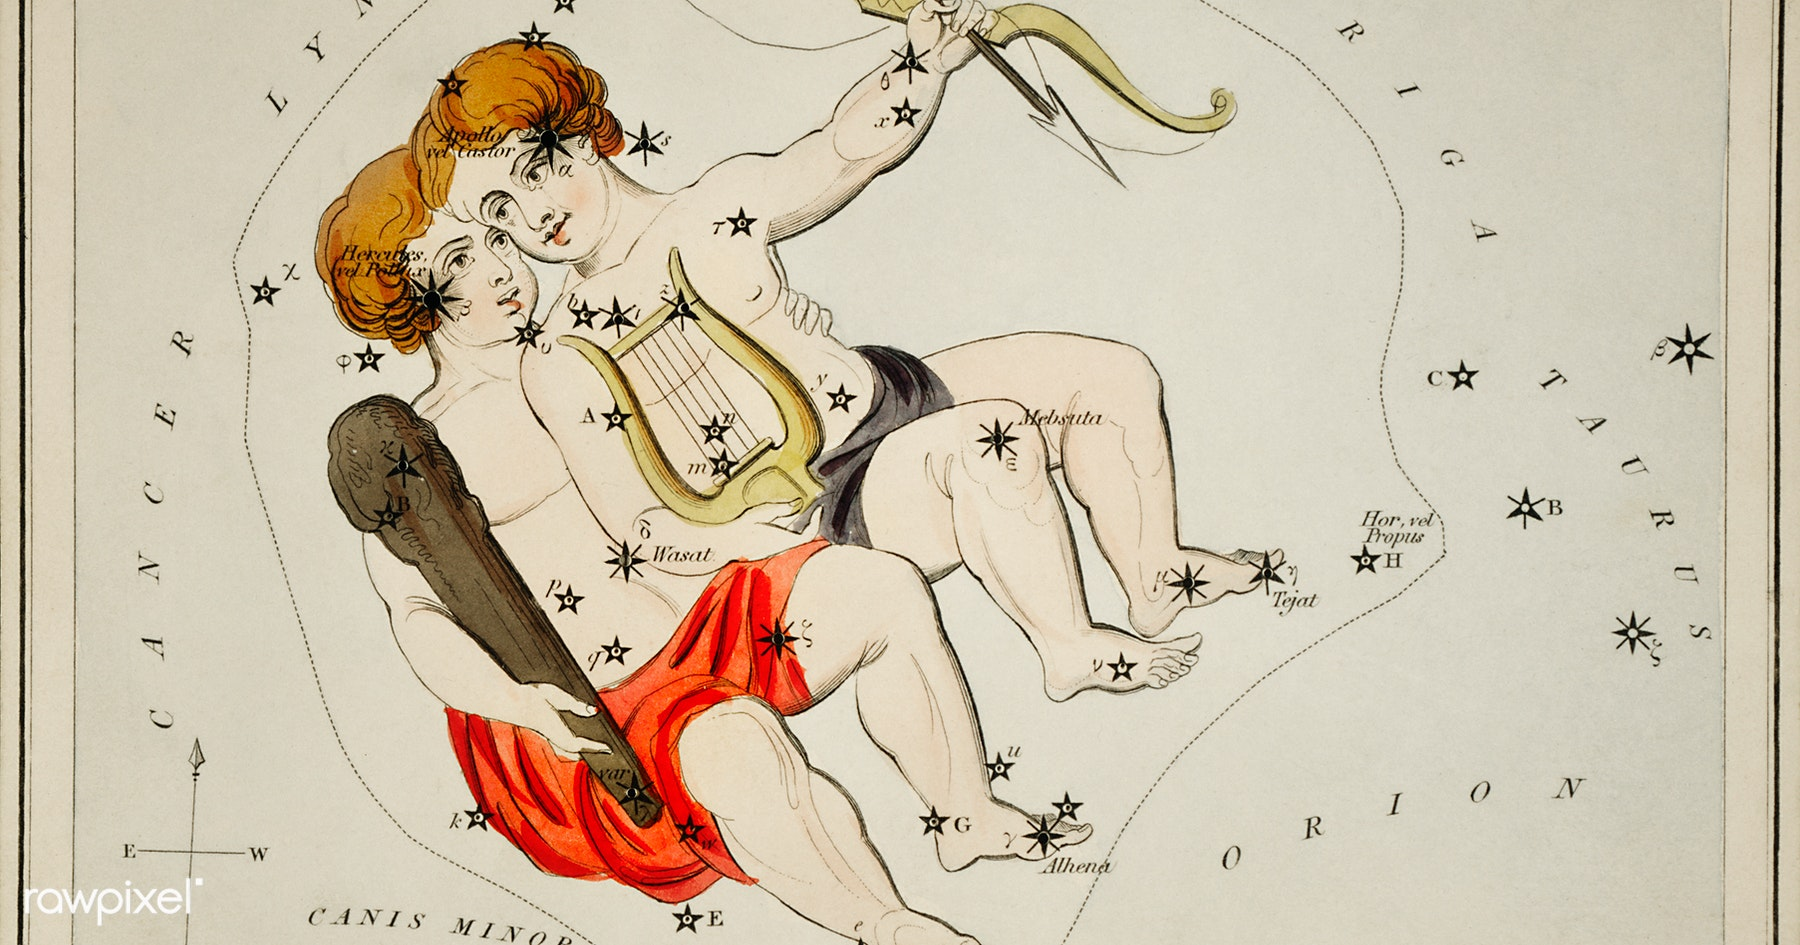 Sidney Hall's (1831) astronomical chart illustration of the zodiac Gemini. Original from Library of Congress. Digitally enhanced by rawpixel.